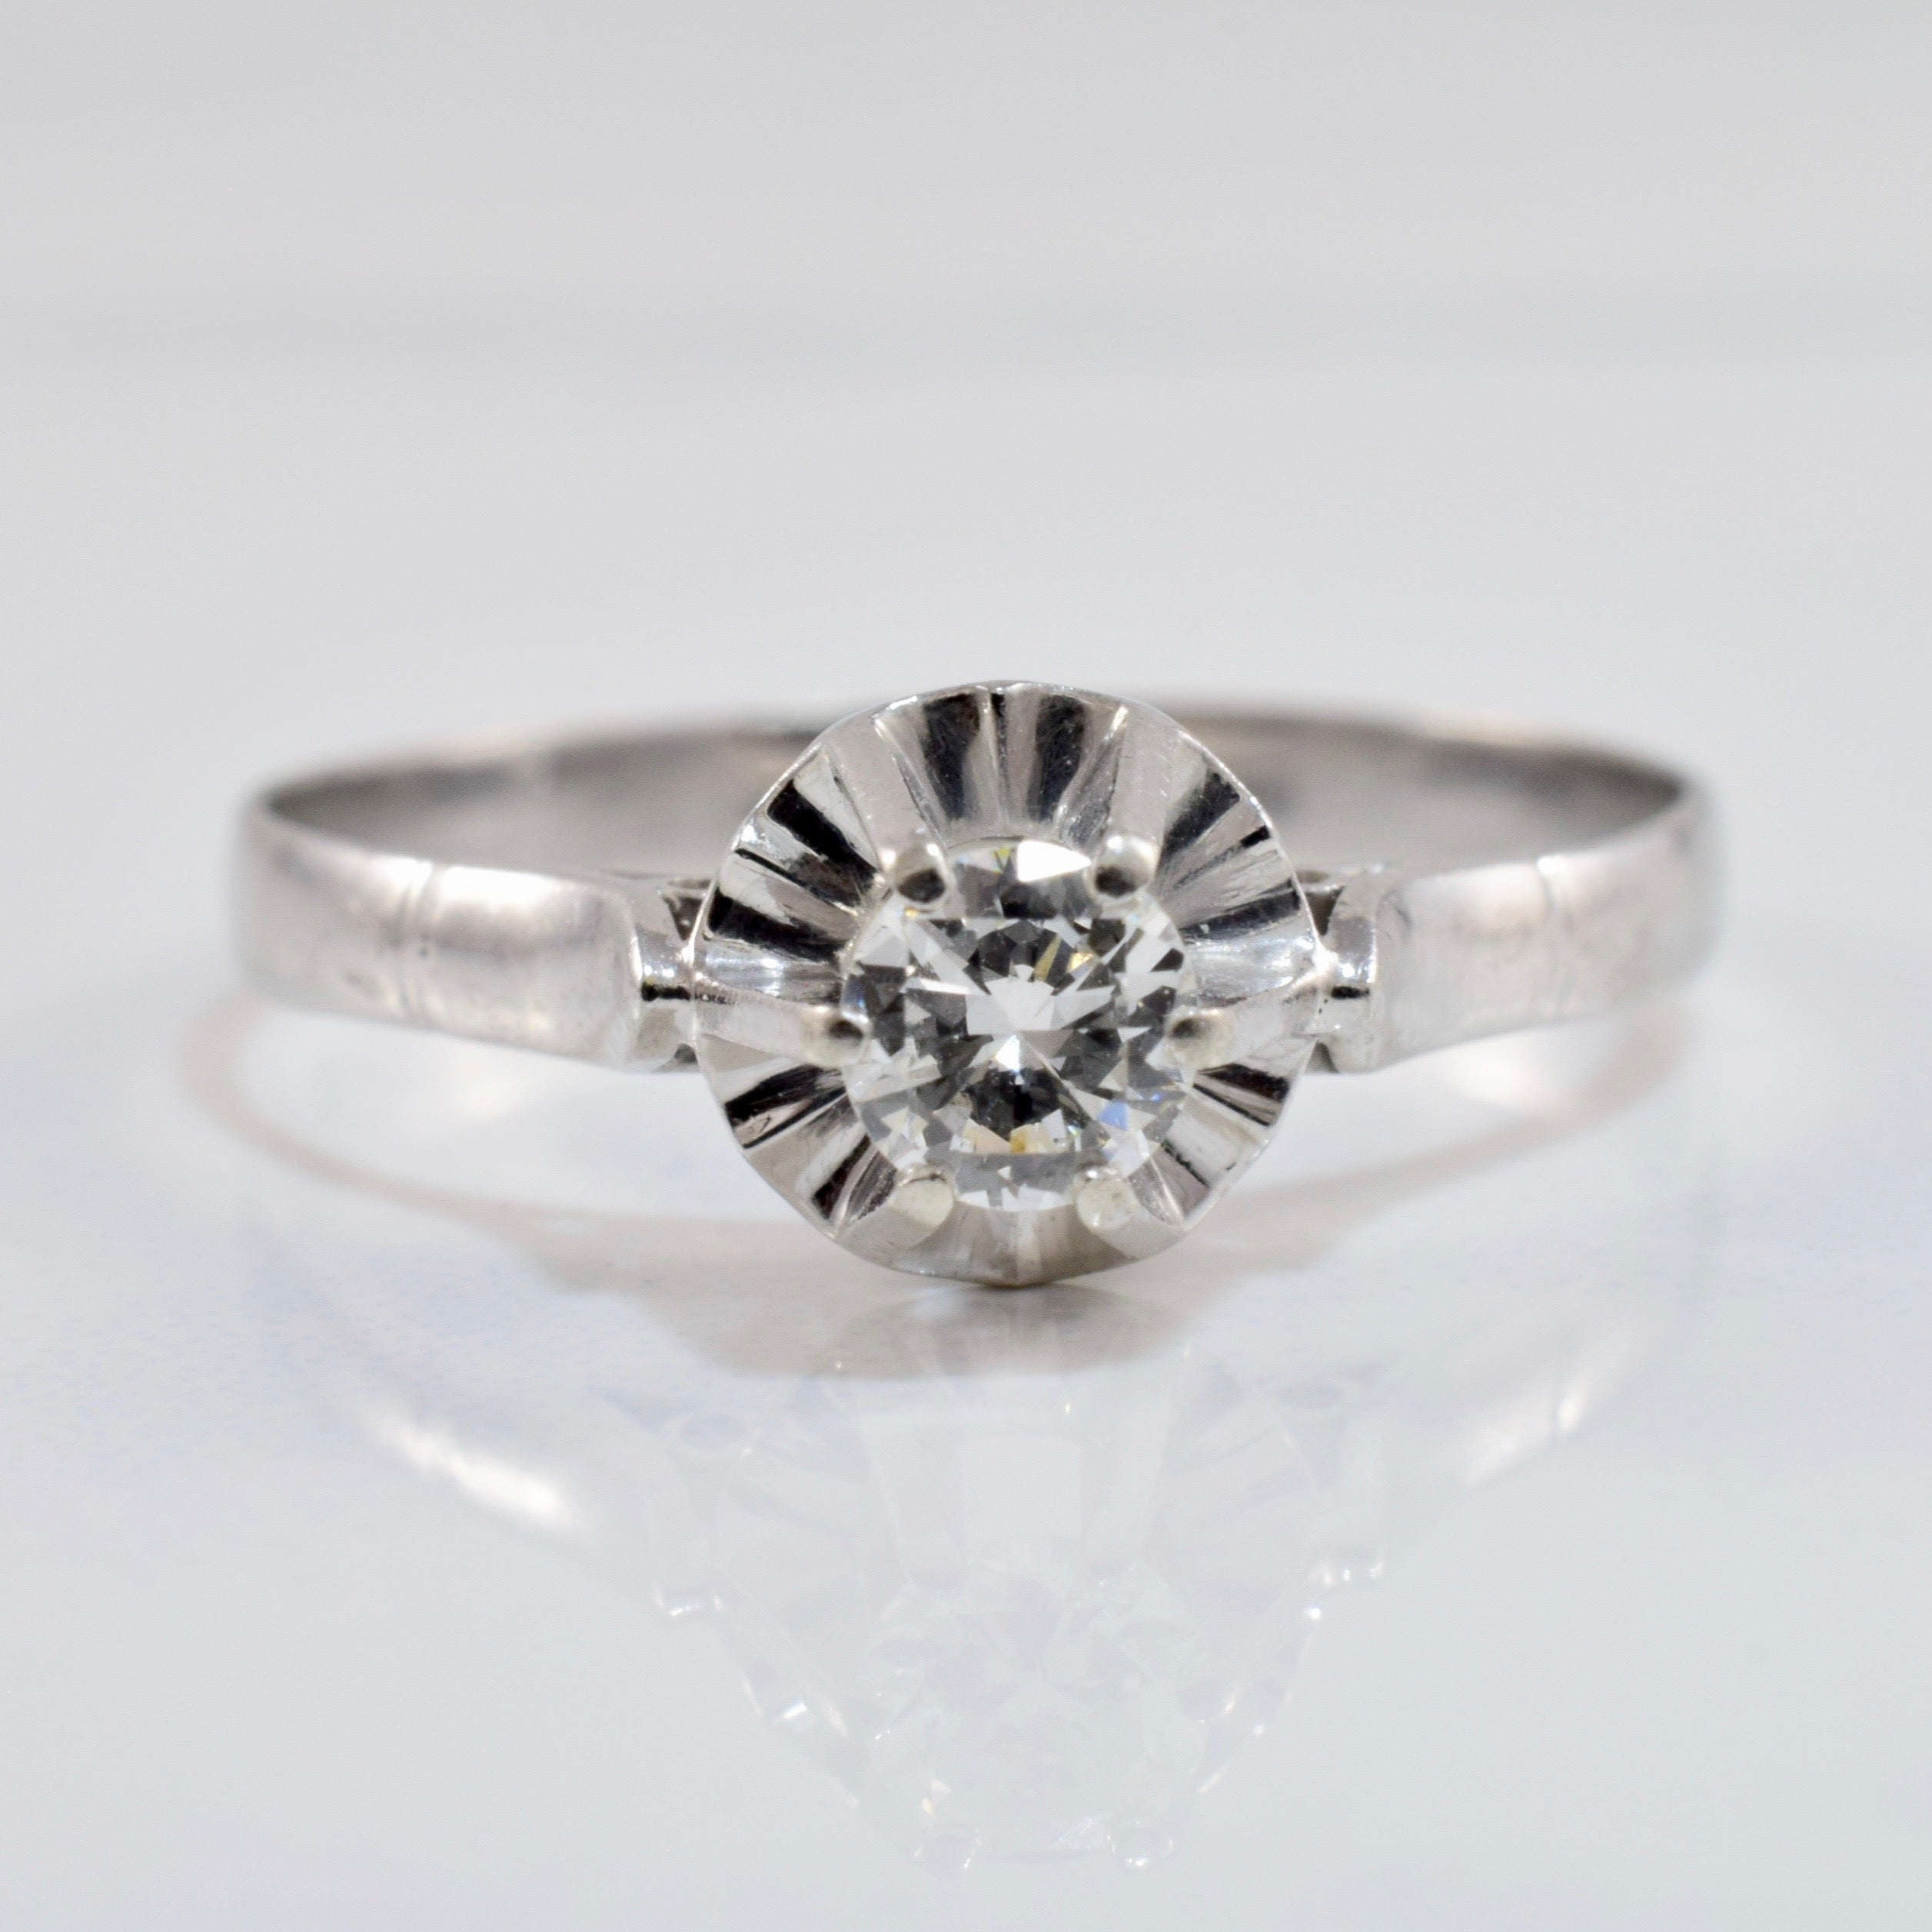 High Set Engagement Ring | 0.20 ct SZ 7.75 |